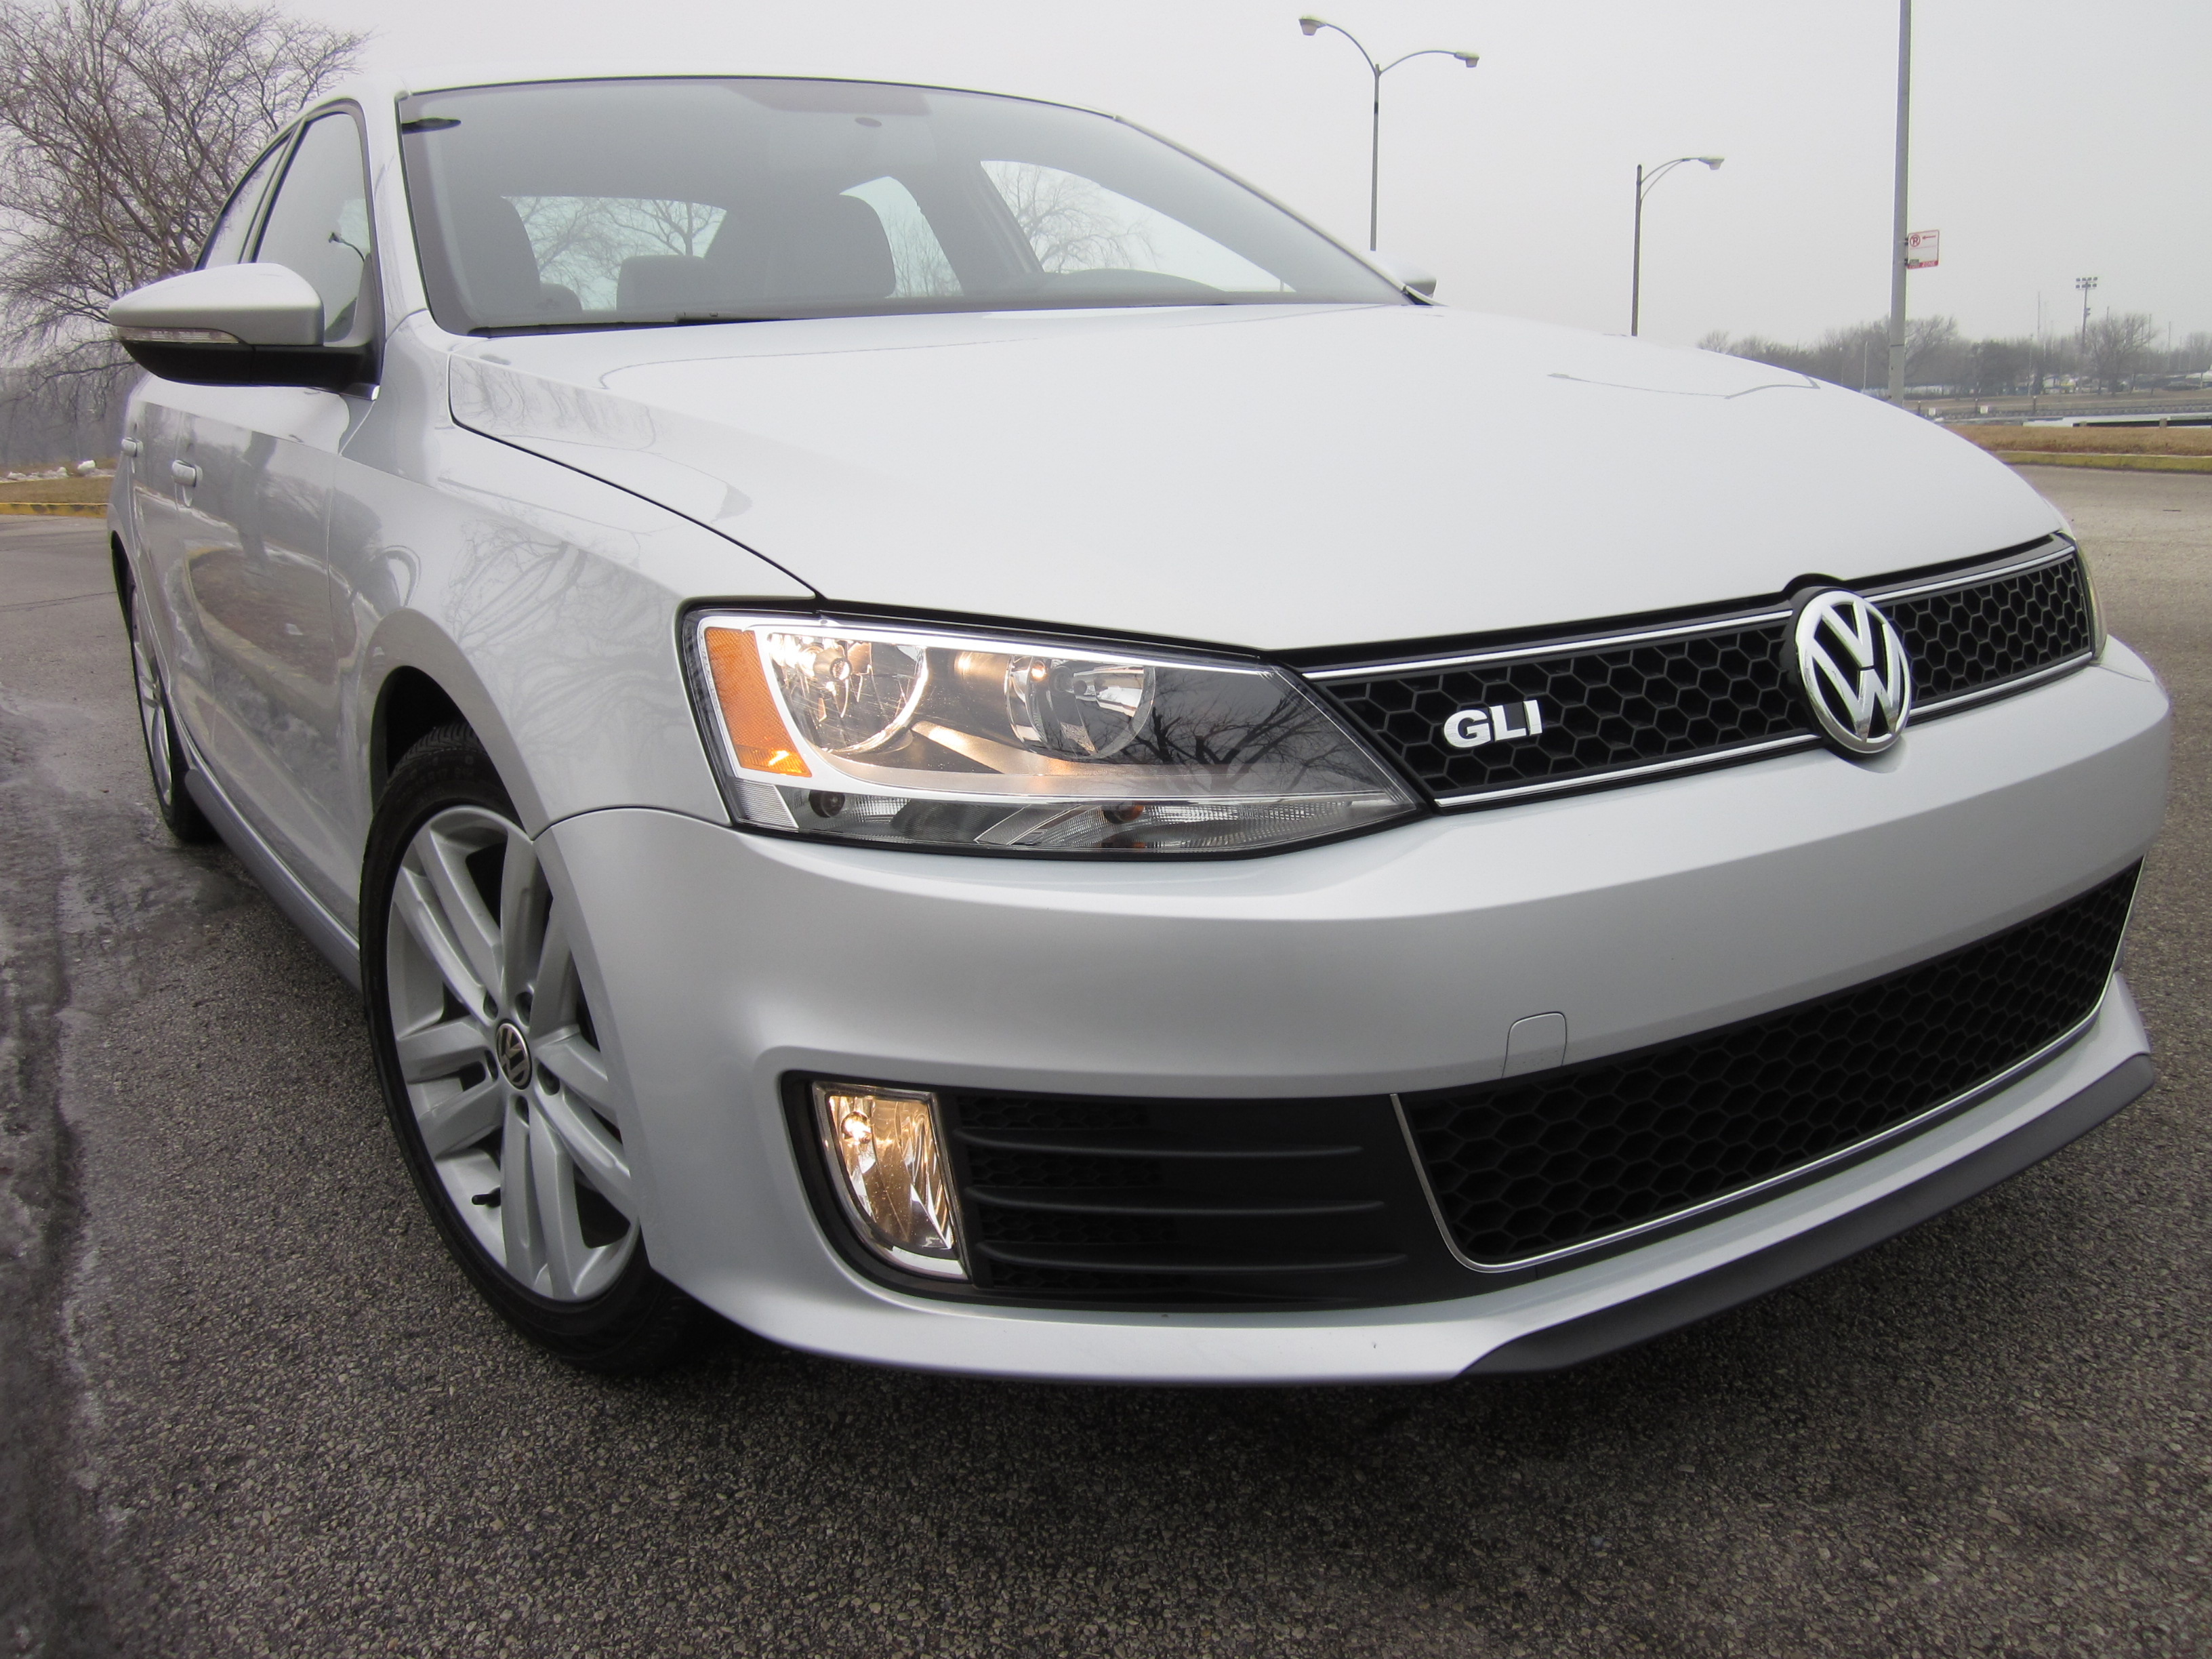 2012 Volkswagen Jetta GLI Review and Fun Drive by Larry Nutson +VIDEO